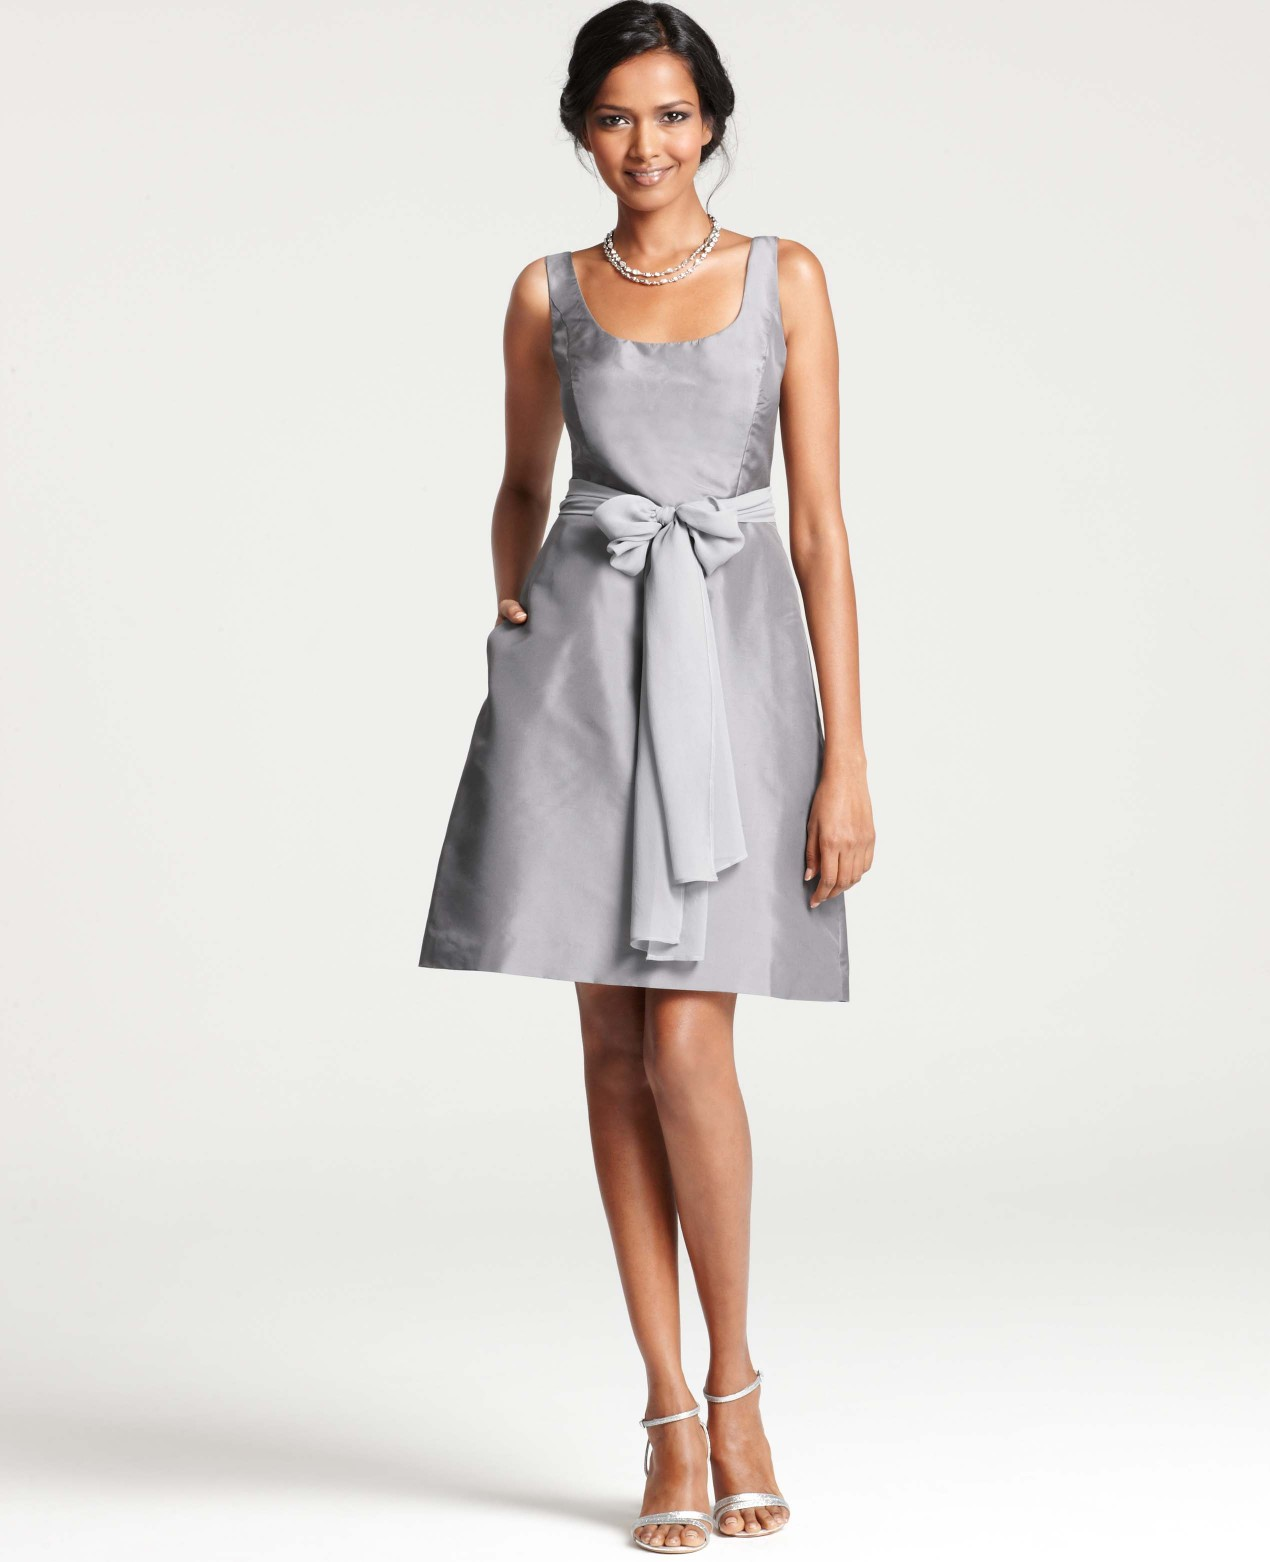 Gray bridesmaid dresses ann taylor wedding short dresses gray bridesmaid dresses ann taylor 76 ombrellifo Images